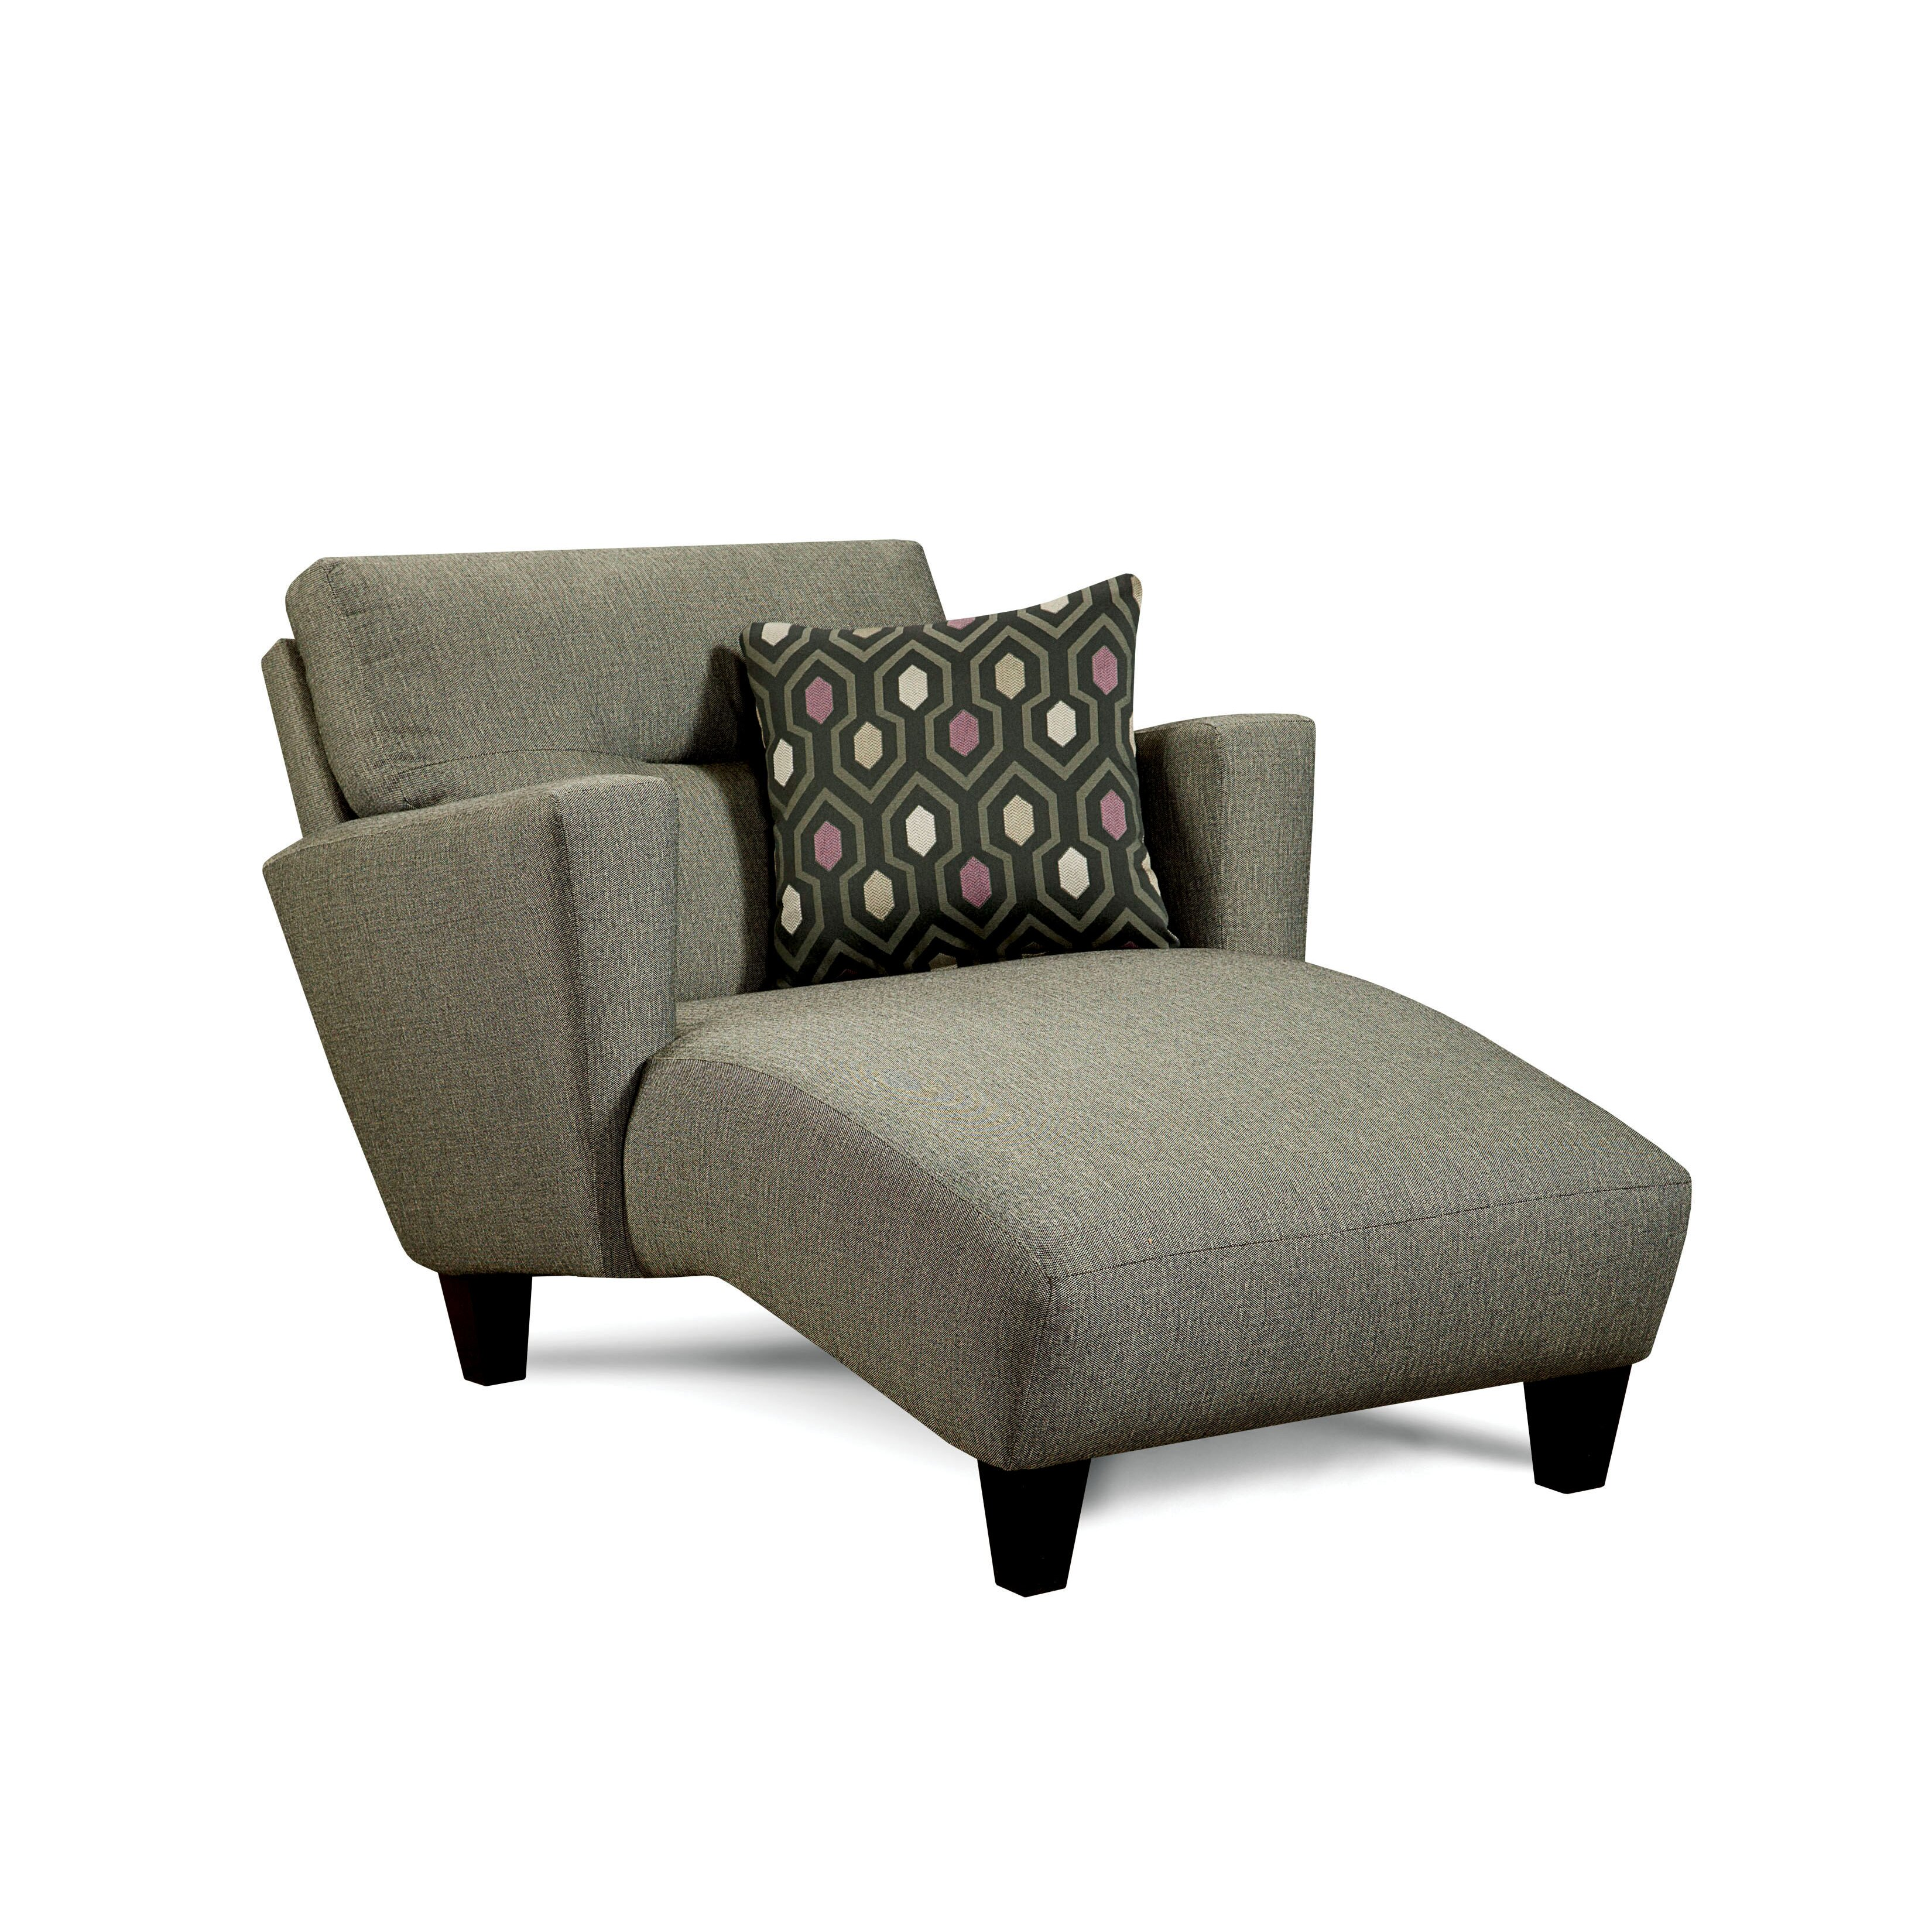 Violette Modern Chaise Lounge